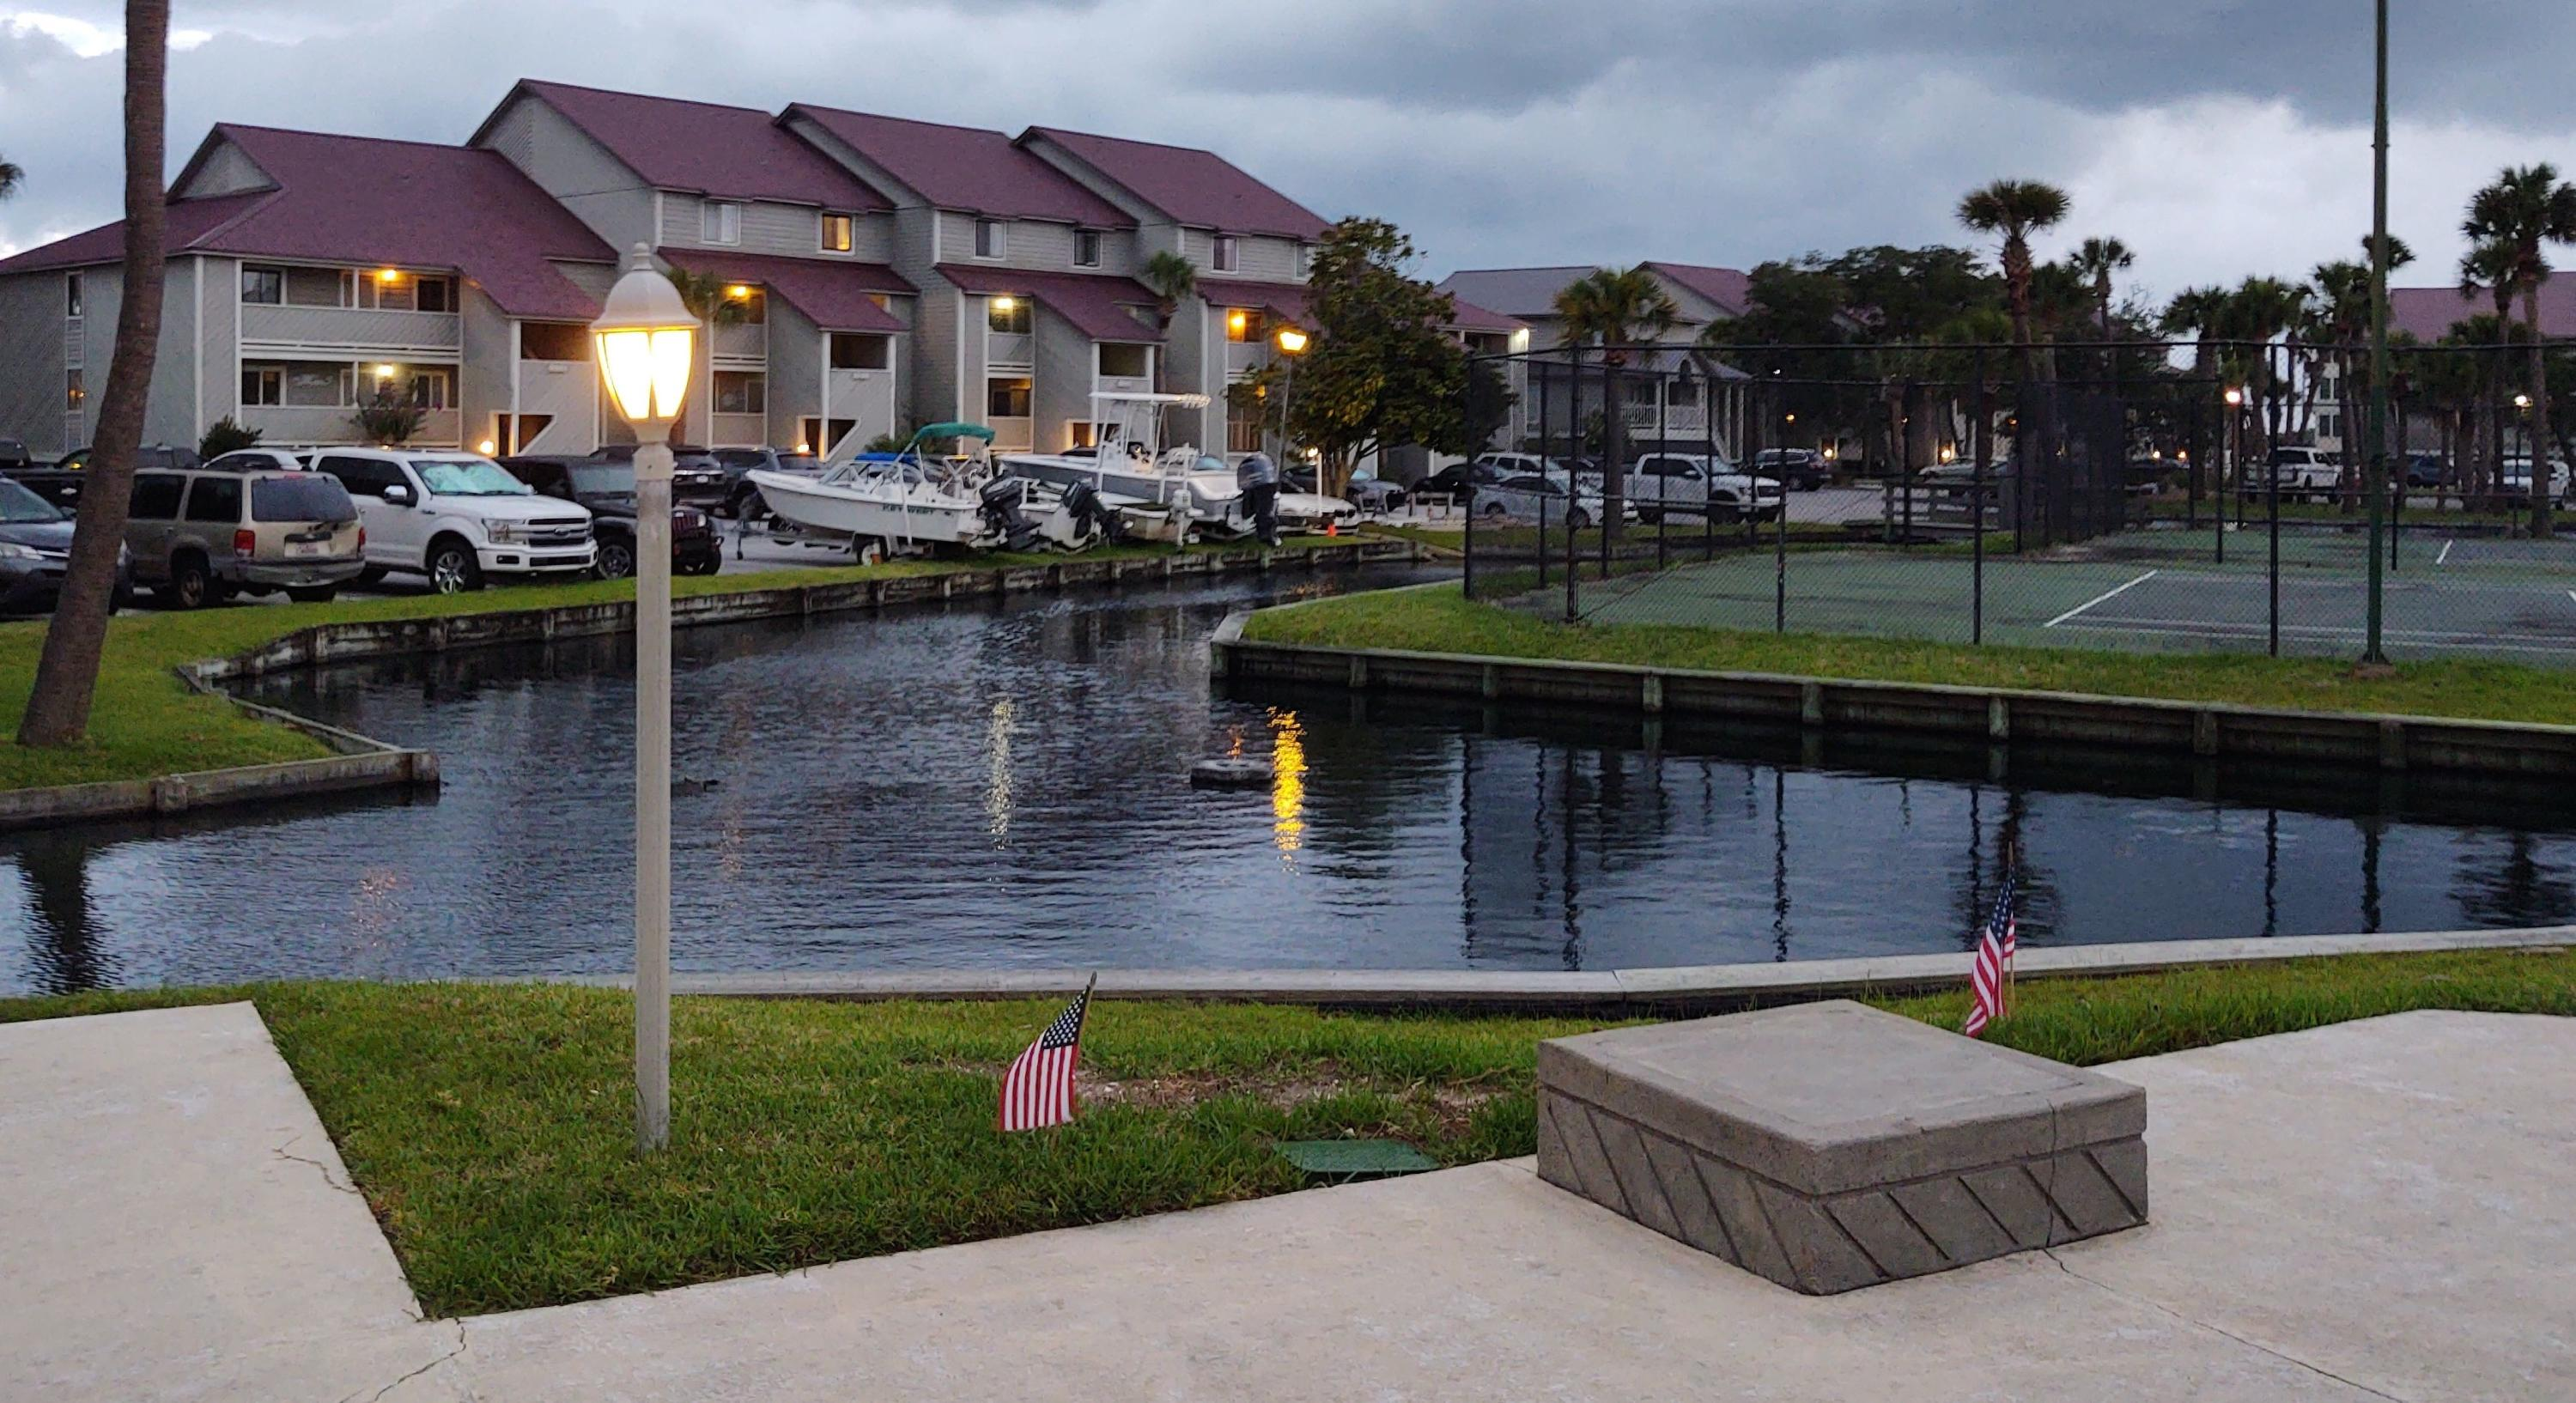 Mariners Cay Homes For Sale - 22 Mariners Cay, Folly Beach, SC - 12